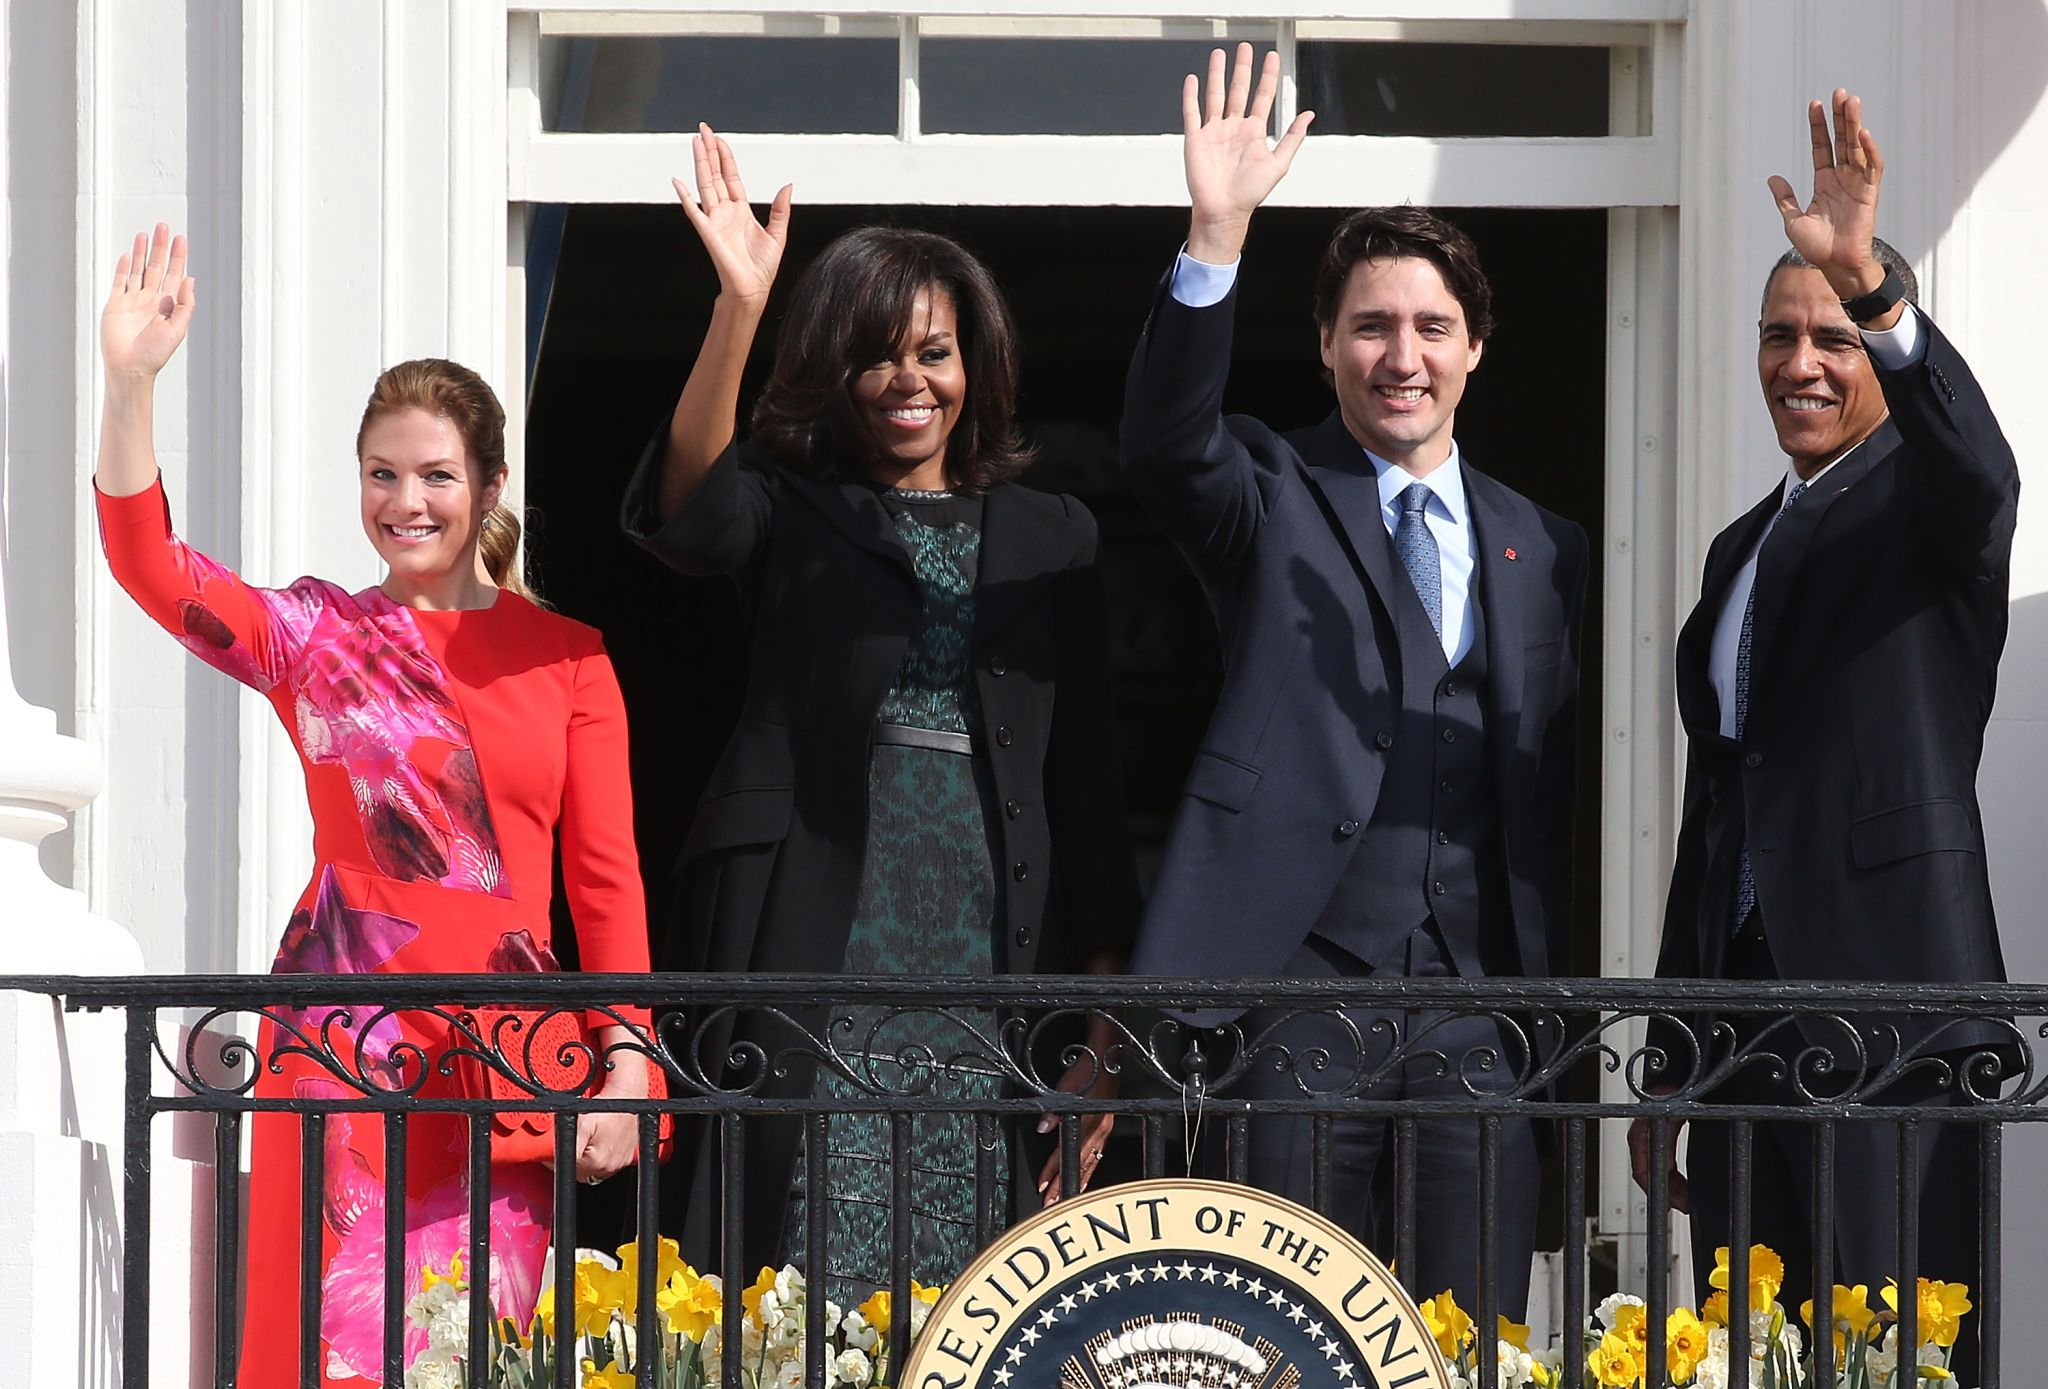 Obama endorses embattled PM Trudeau in Canadian election